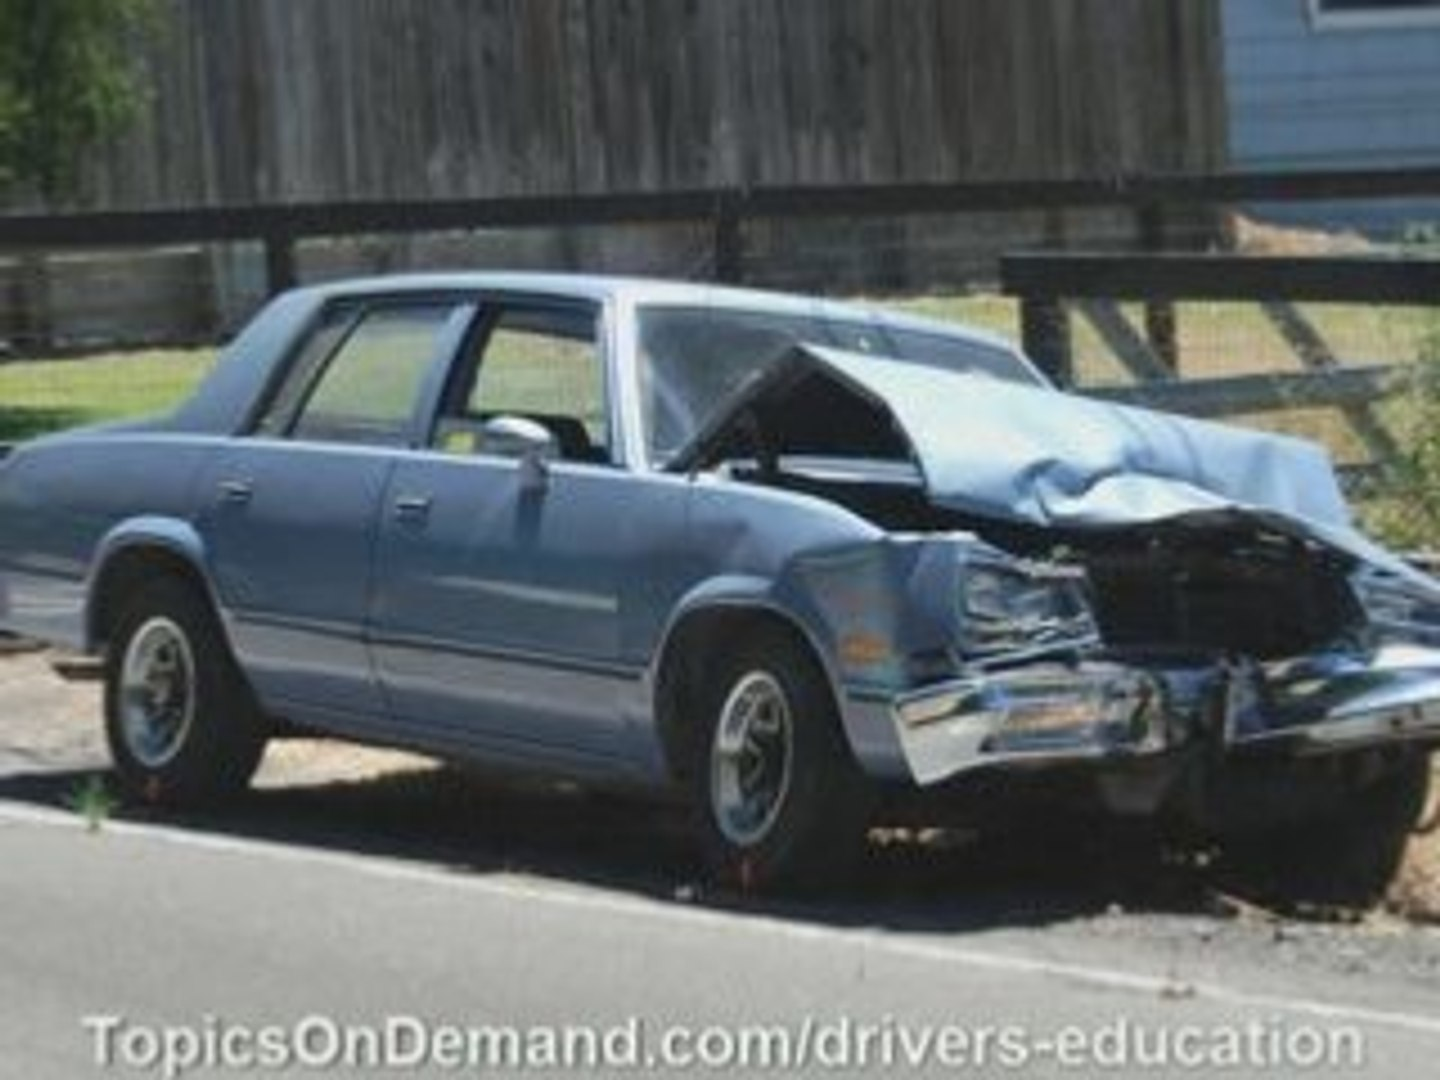 Drivers Education Online Blogs and Sites!